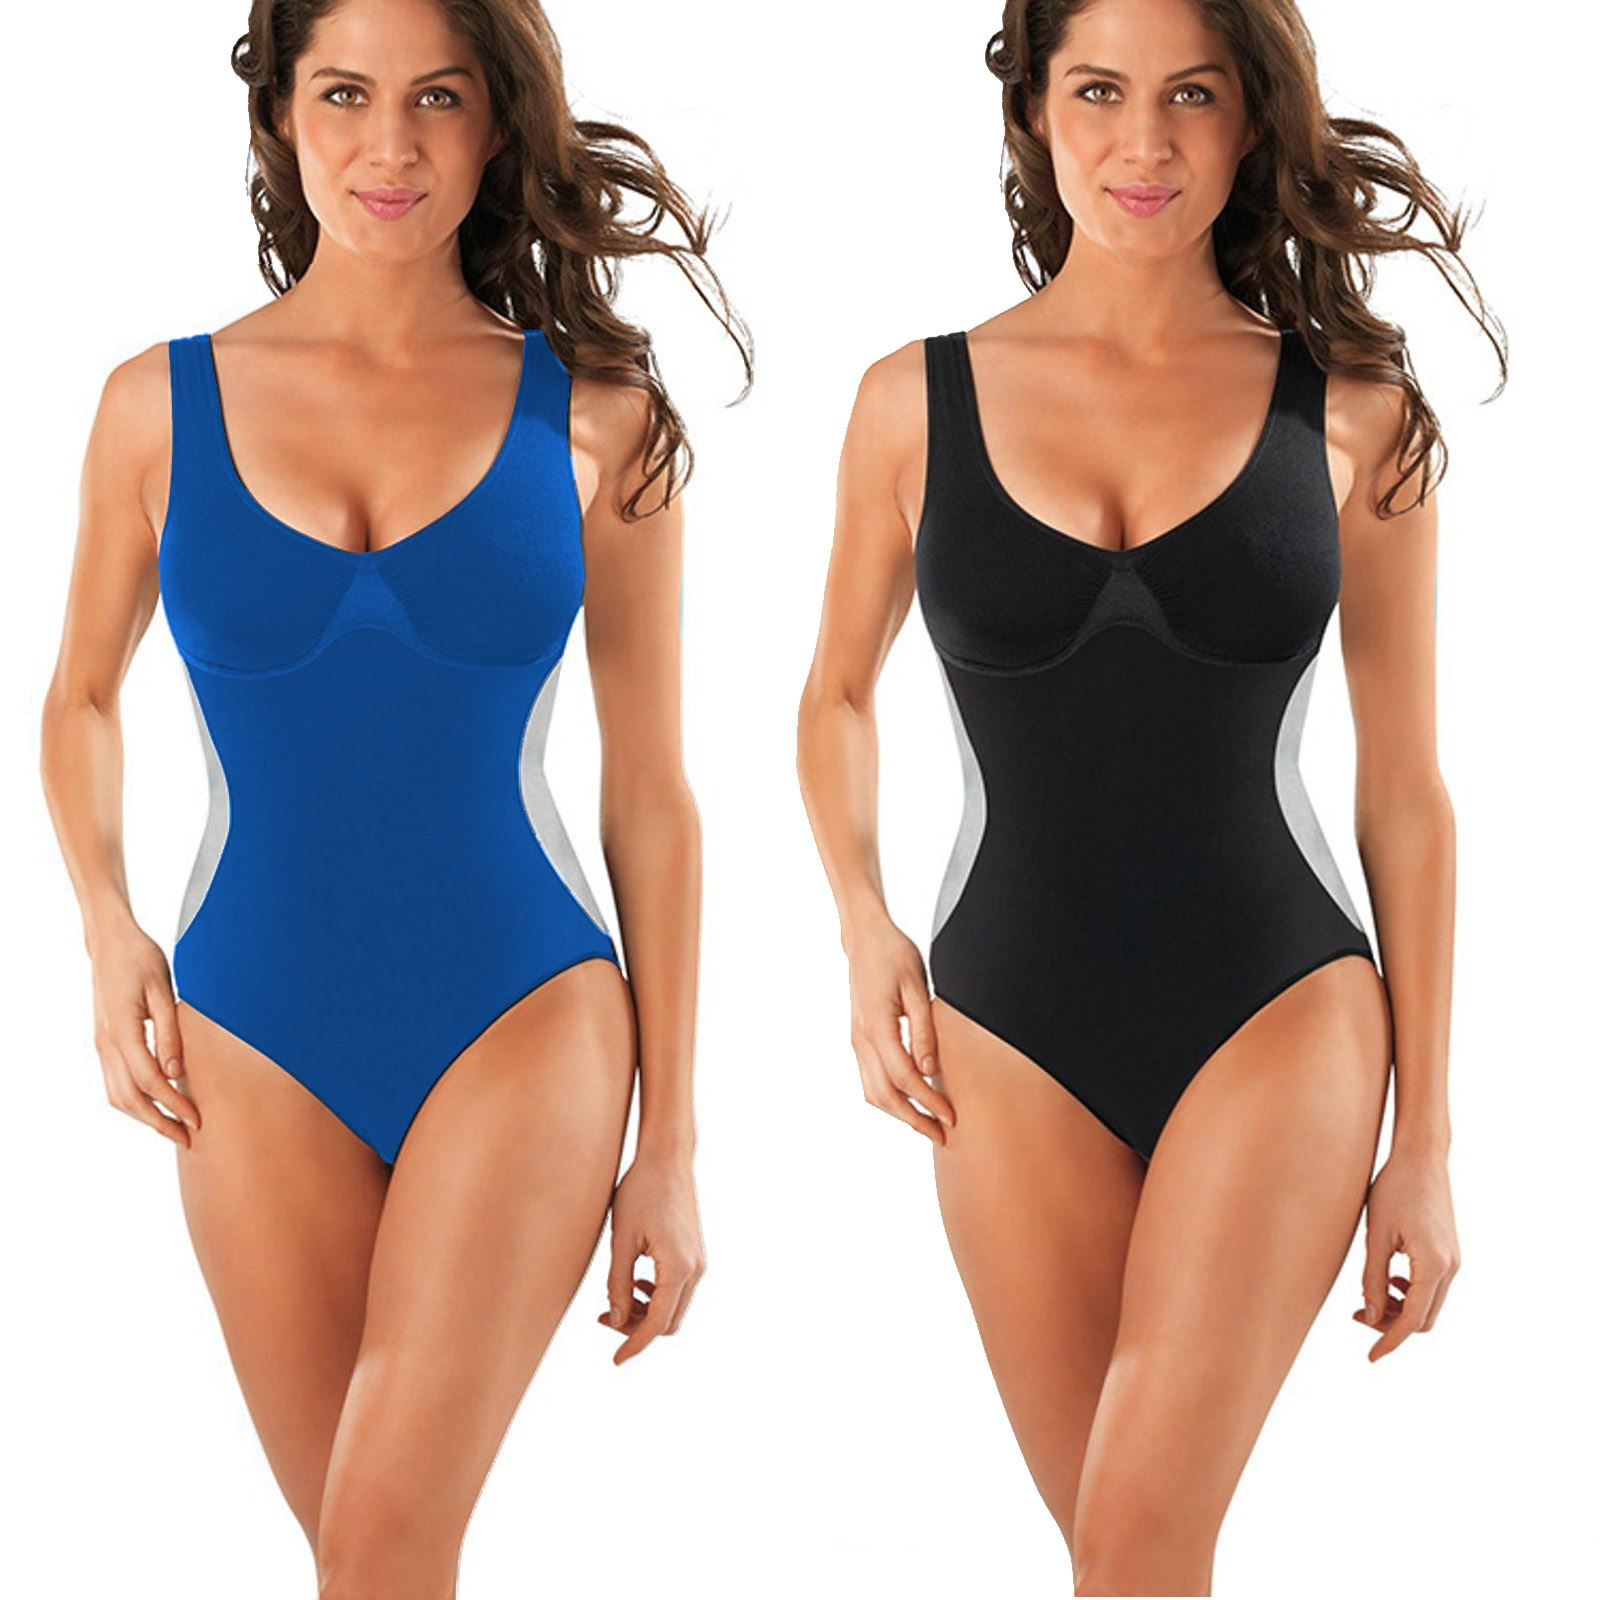 c55b9e85b5 Details about Firm Control Hold in Swimsuit Tummy Control Swimming Costume  Blue or Black